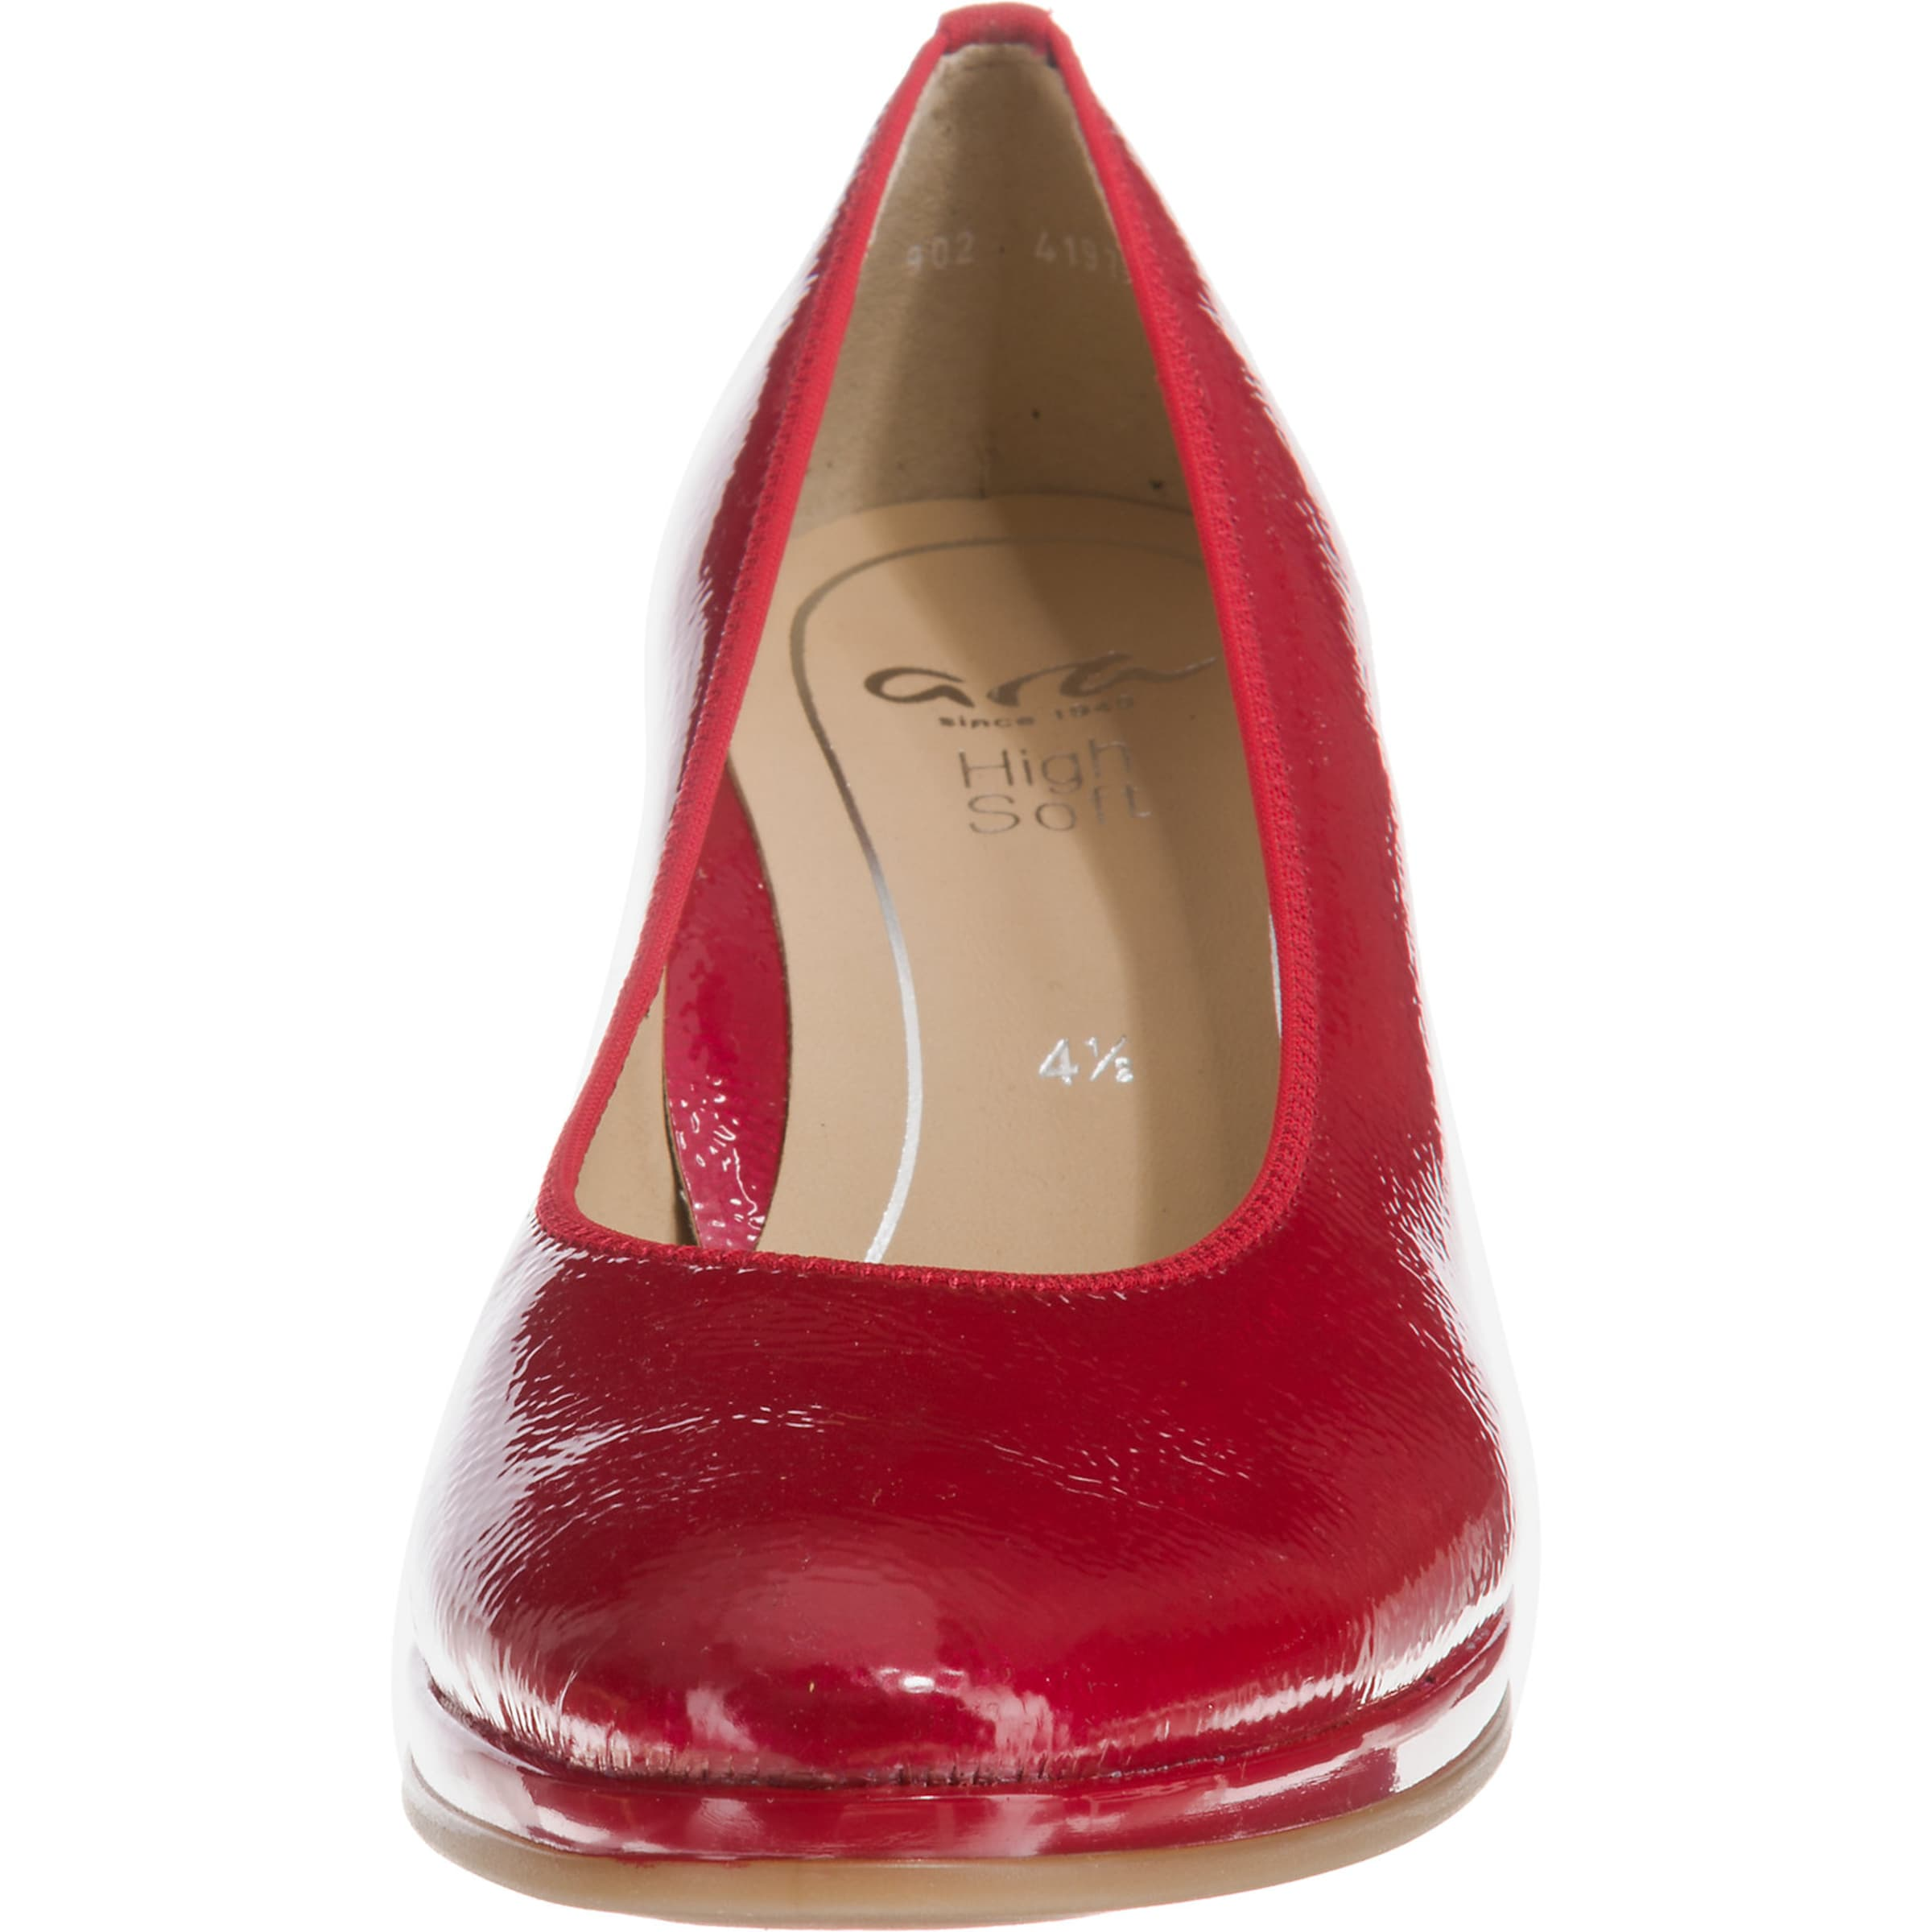 Rouge Escarpins En Escarpins Clair Escarpins Ara Ara Clair Ara Rouge En E9WHY2ID